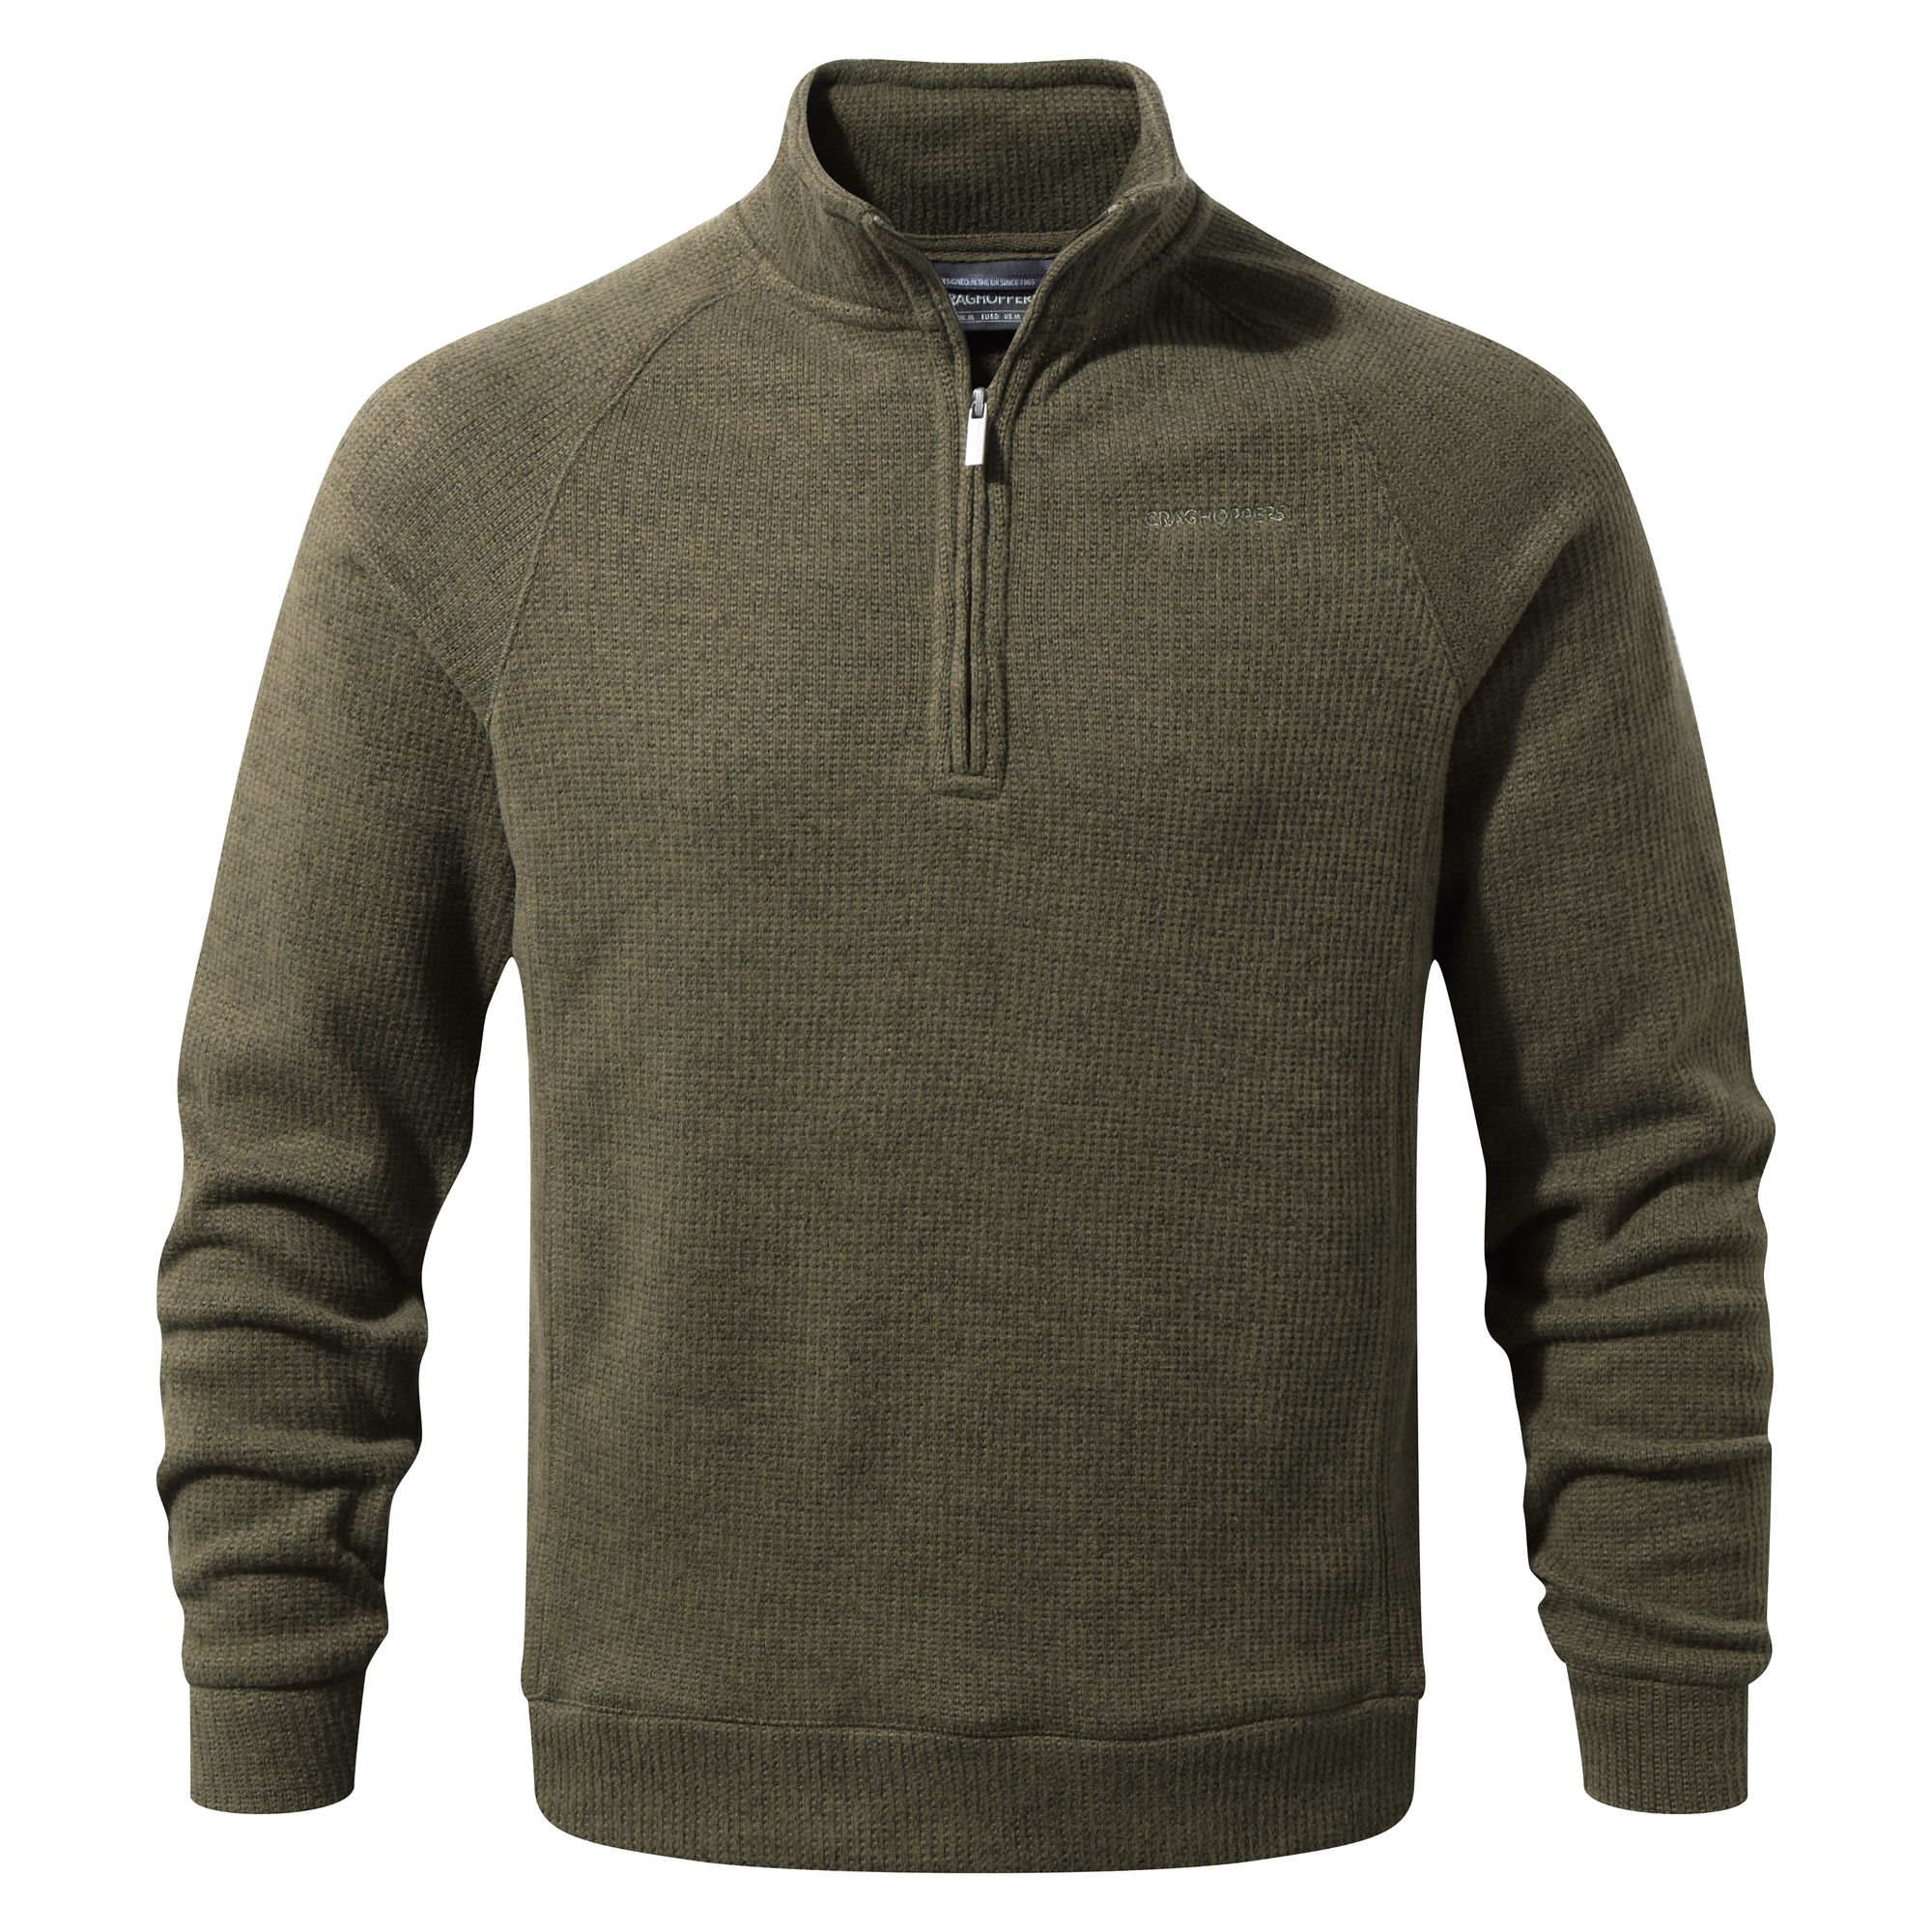 Craghoppers-Mens-Norton-Half-Zip-Fleece-CG796